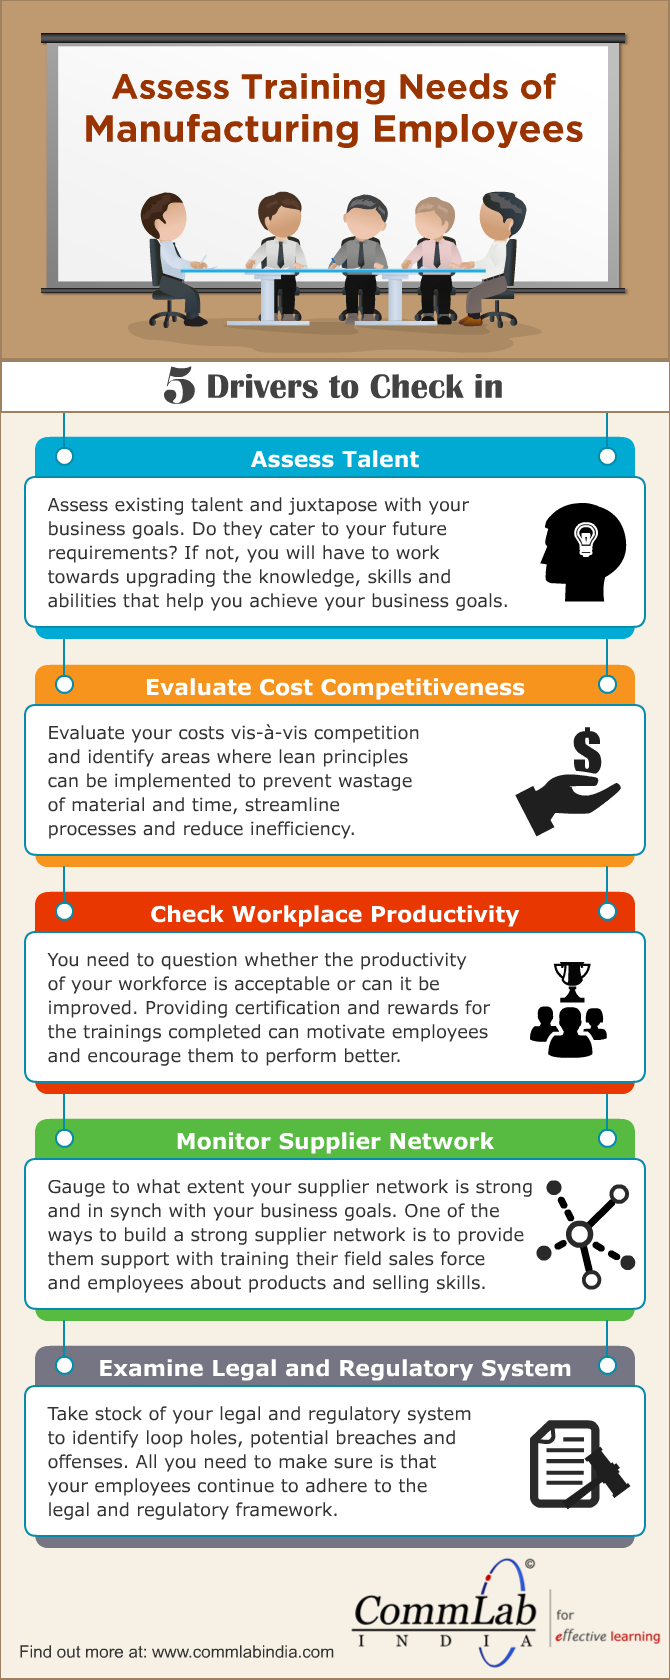 How to Assess Training Needs Of Manufacturing Employees [Infographic]